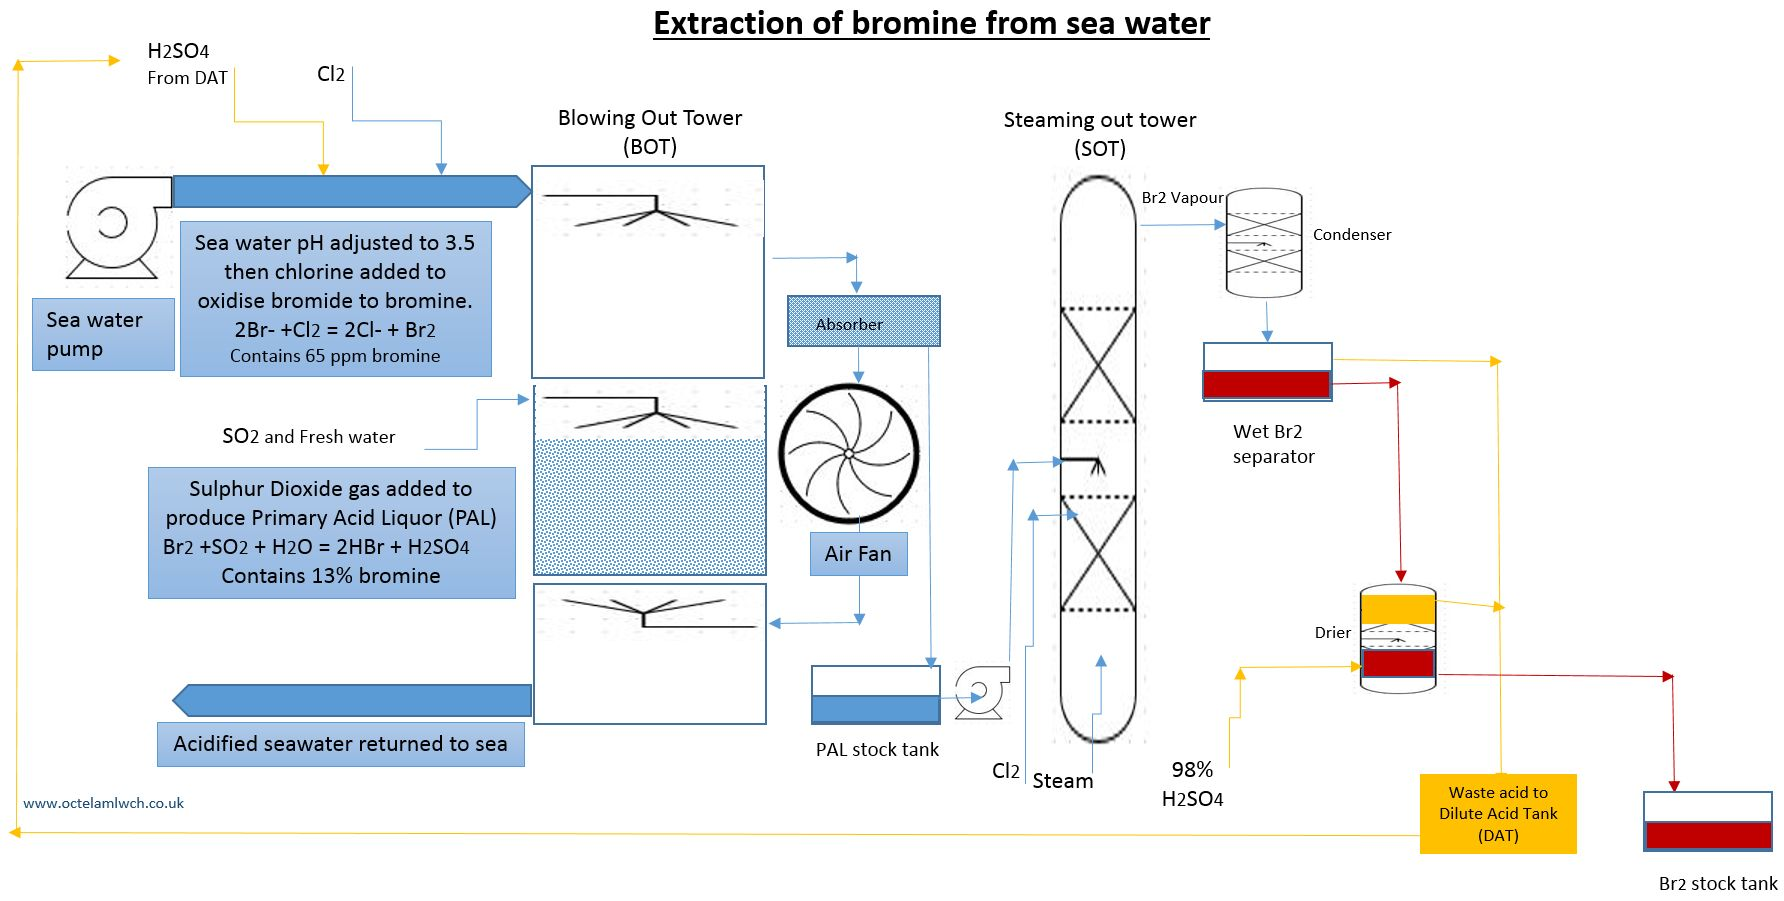 Extraction of Br2 from sea water